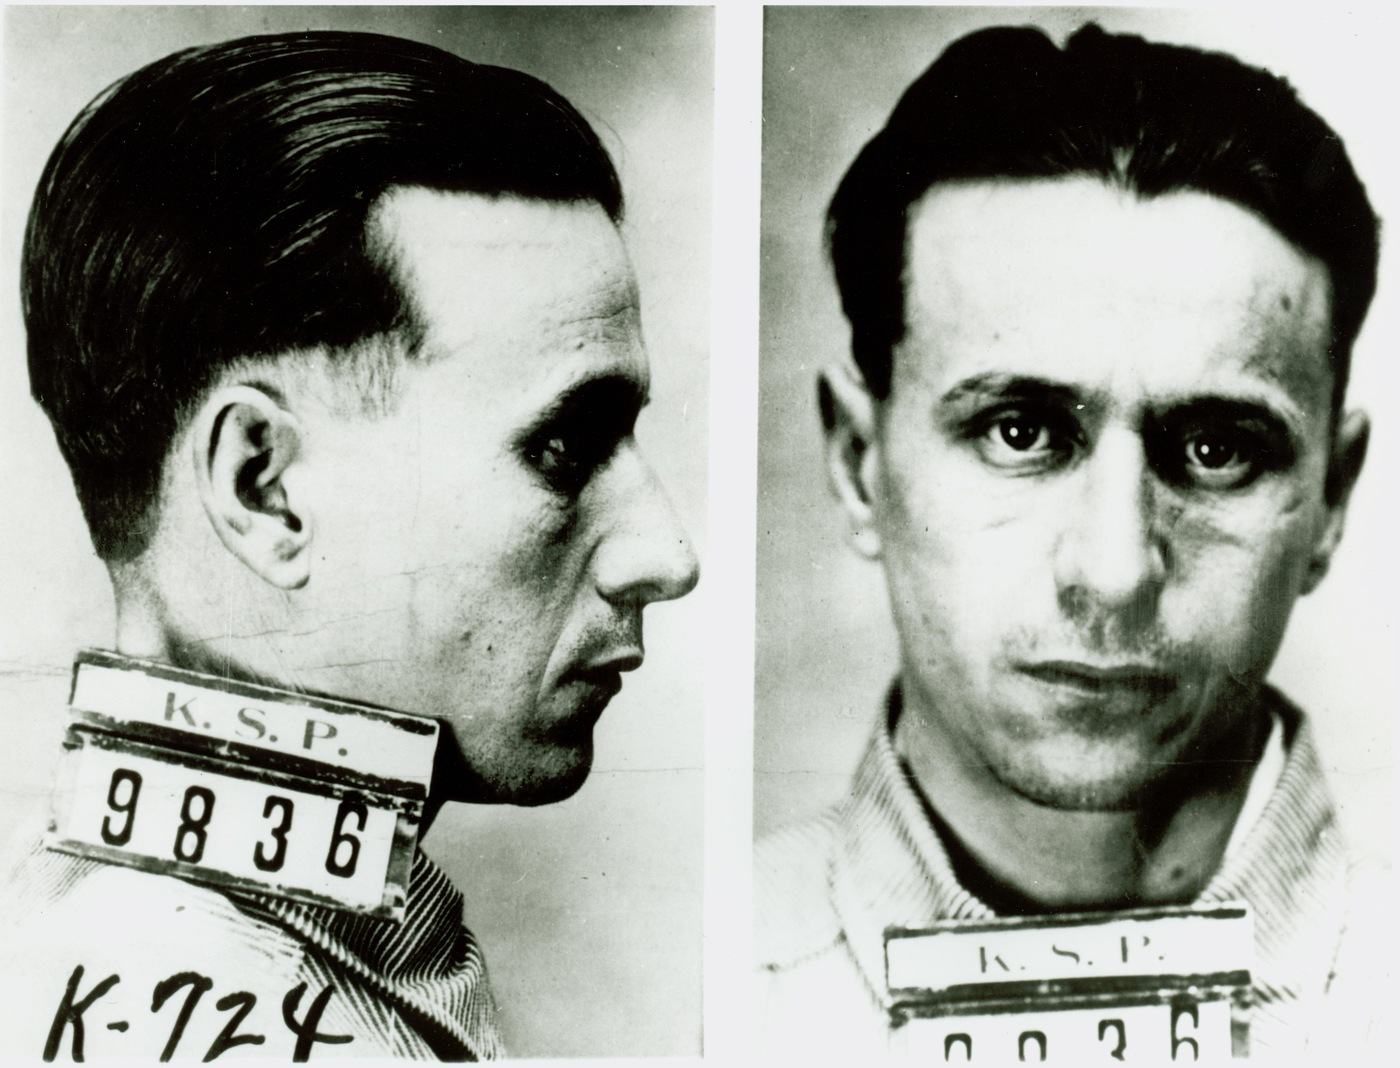 Mugshot of Fred Barker of the Barker-Karpis gang following his arrest in 1926. Fred Barker (1901-1935) was the third oldest of the Barker brothers. He died with his mother following a shootout with Bureau agents in Florida on January 16, 1935.